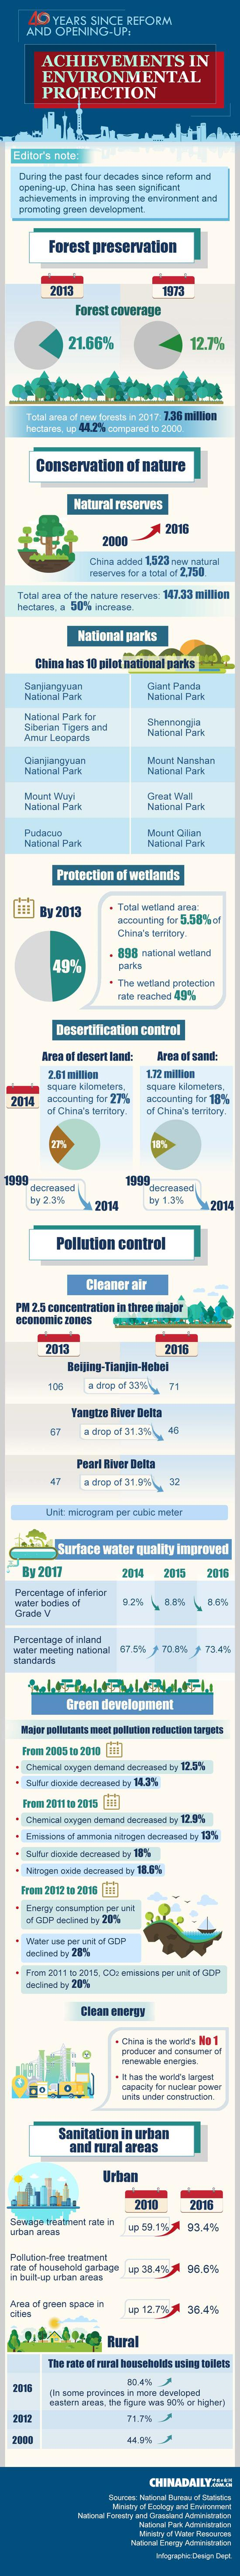 40 years since reform and opening-up: Achievements in environmental protection